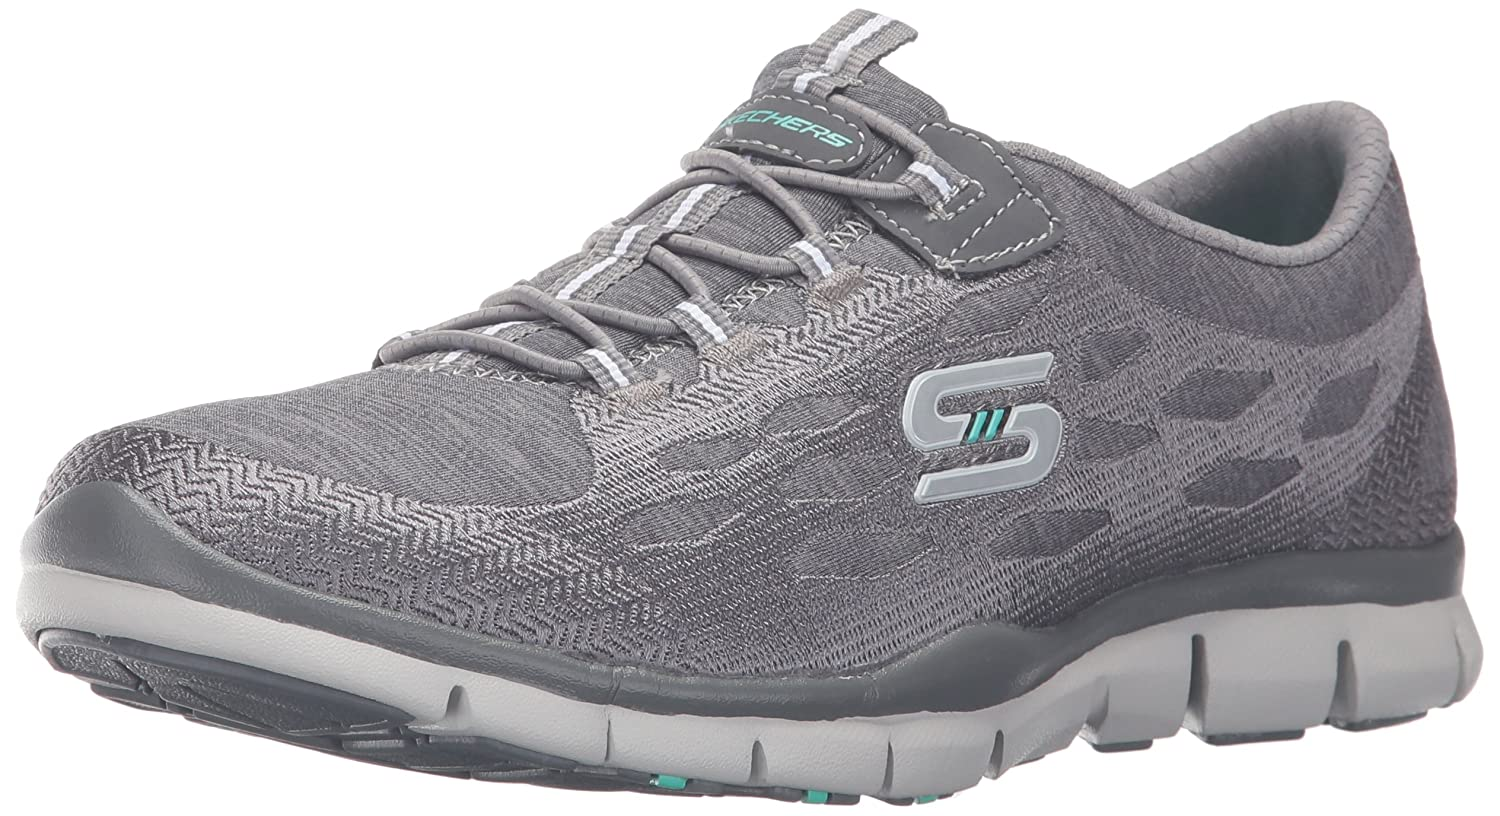 Skechers Sport Women's Gratis Bungee Fashion Sneaker B01AAVM4IY 8 B(M) US|Grey/White